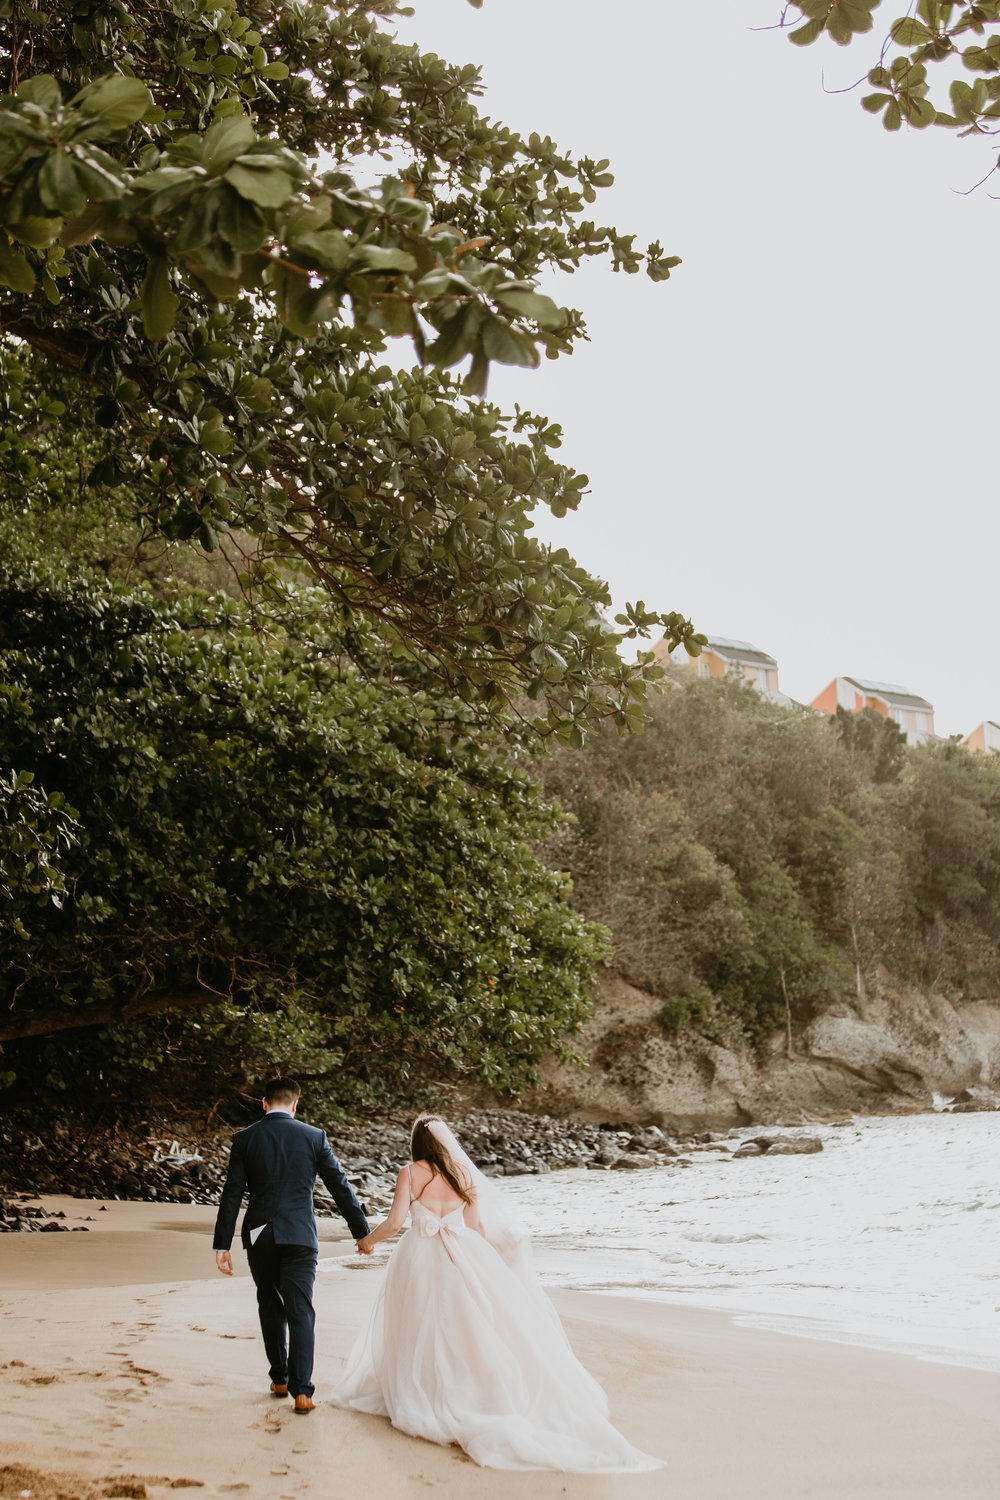 nicole-daacke-photography-destination-wedding-in-st-lucia-sandals-la-toc-intimate-island-wedding-carribean-elopement-photographer-chill-island-wedding-81.jpg